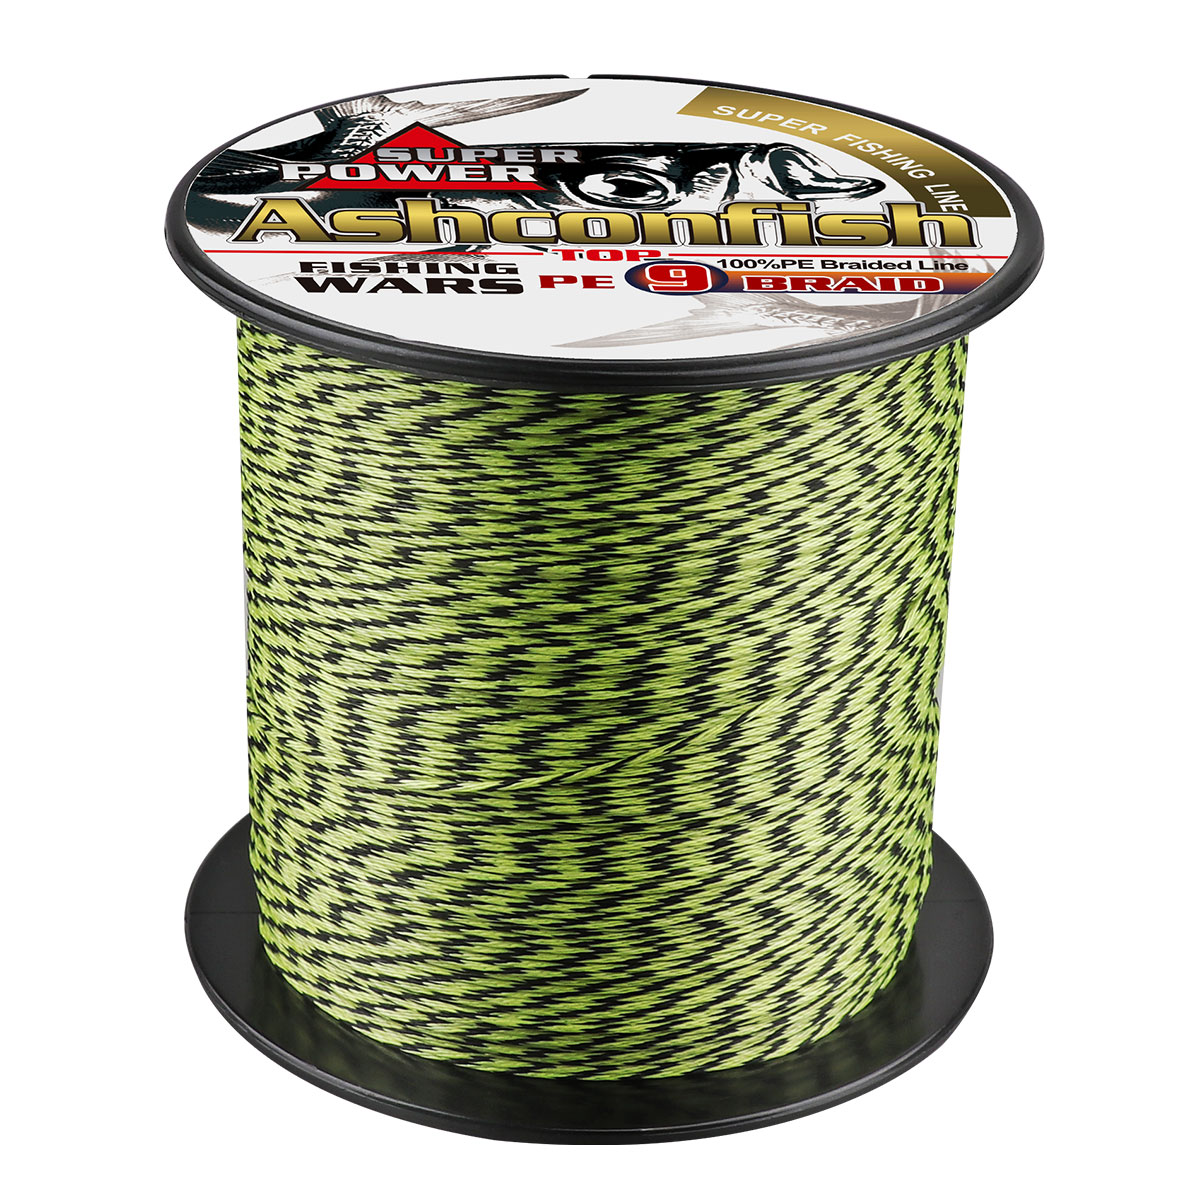 Ashconfish Multifilament fishing braid line wire cord mix color 500m 1000m super 9 strands round 15 20 30 50 <font><b>60</b></font> <font><b>100</b></font> 0.14 0.55mm image